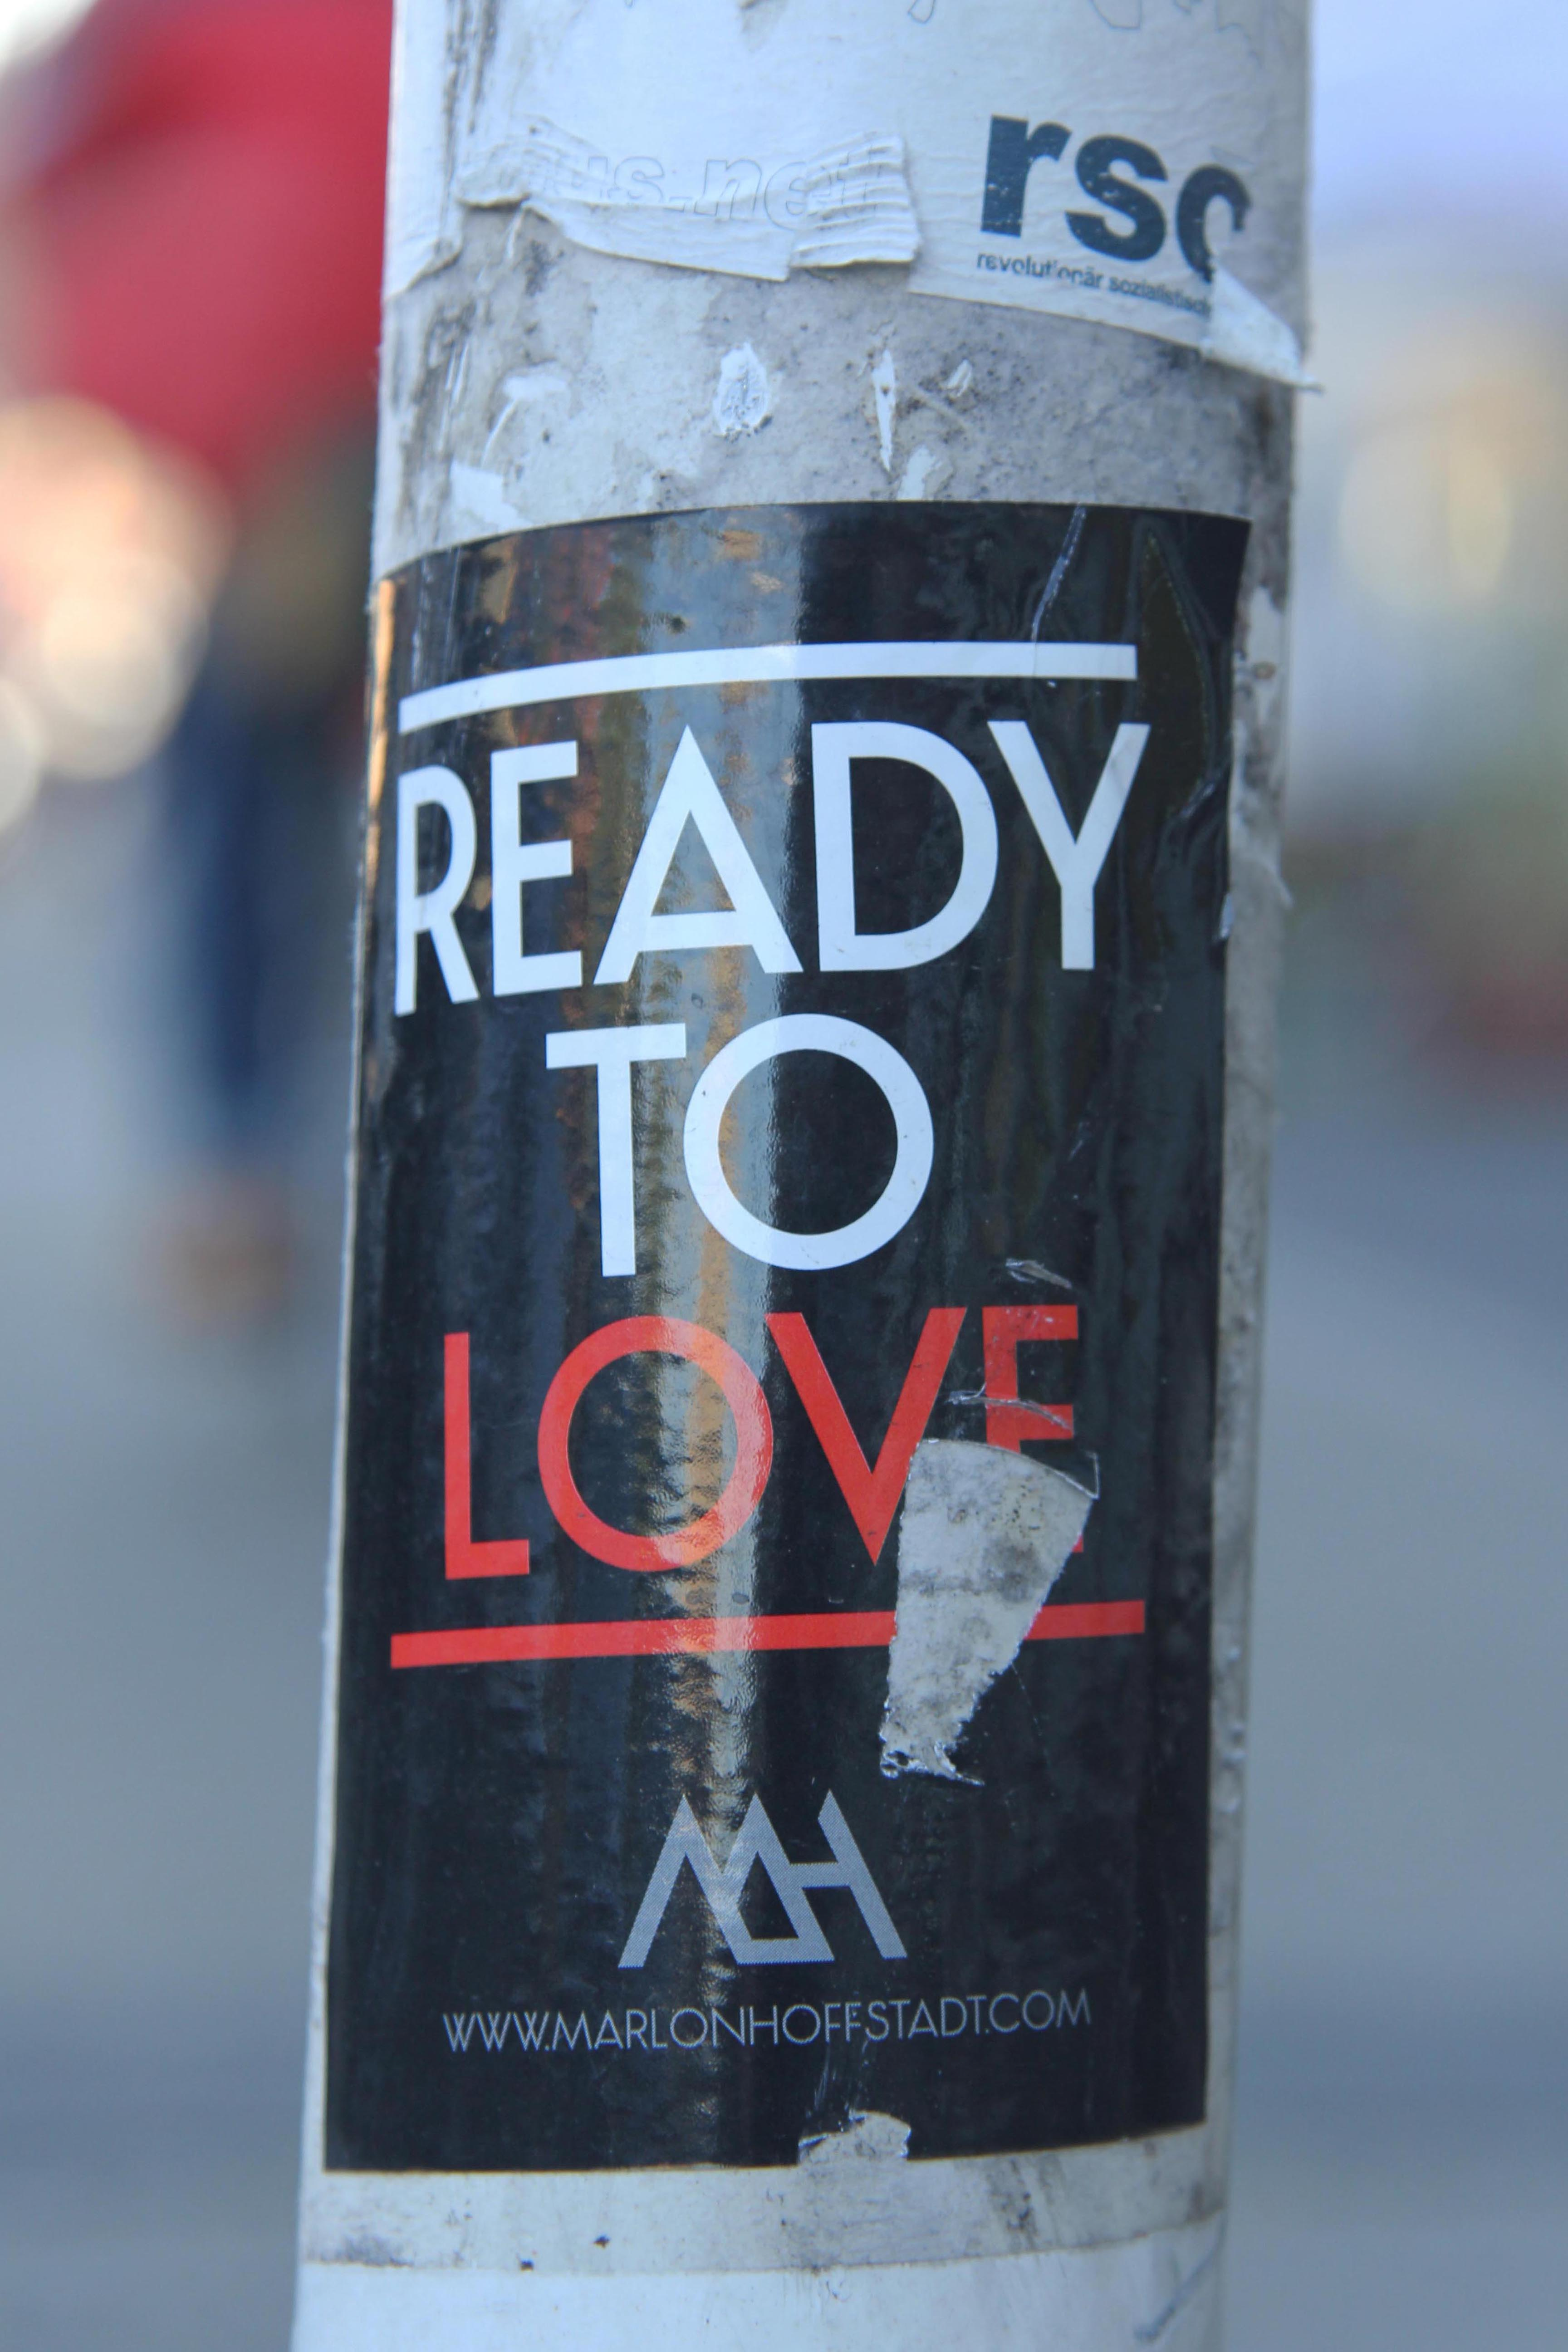 Ready To Love: Sticker on a Berlin post